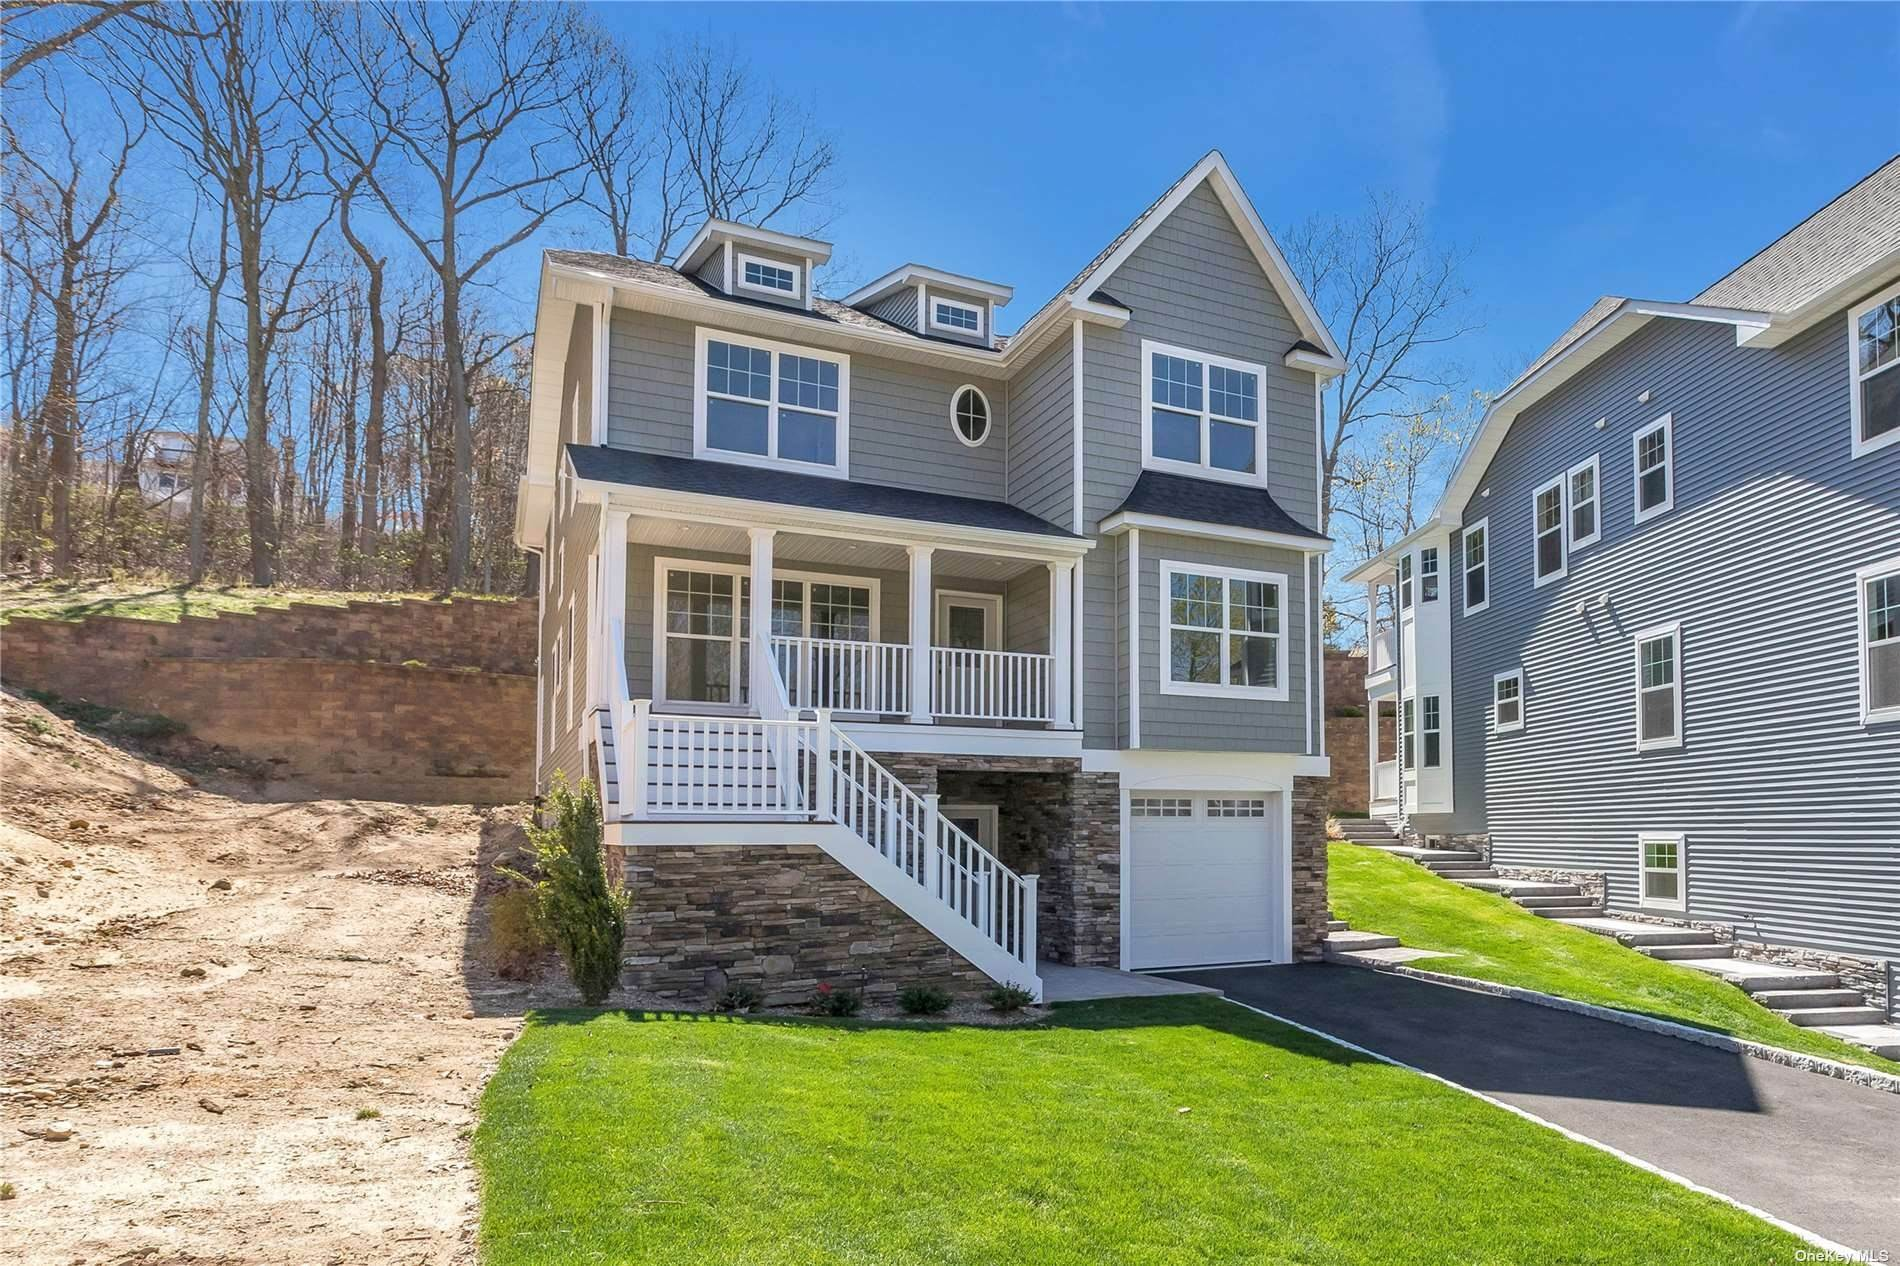 Residential for Sale at 4 Piccadilly Court Port Jefferson, New York 11777 United States